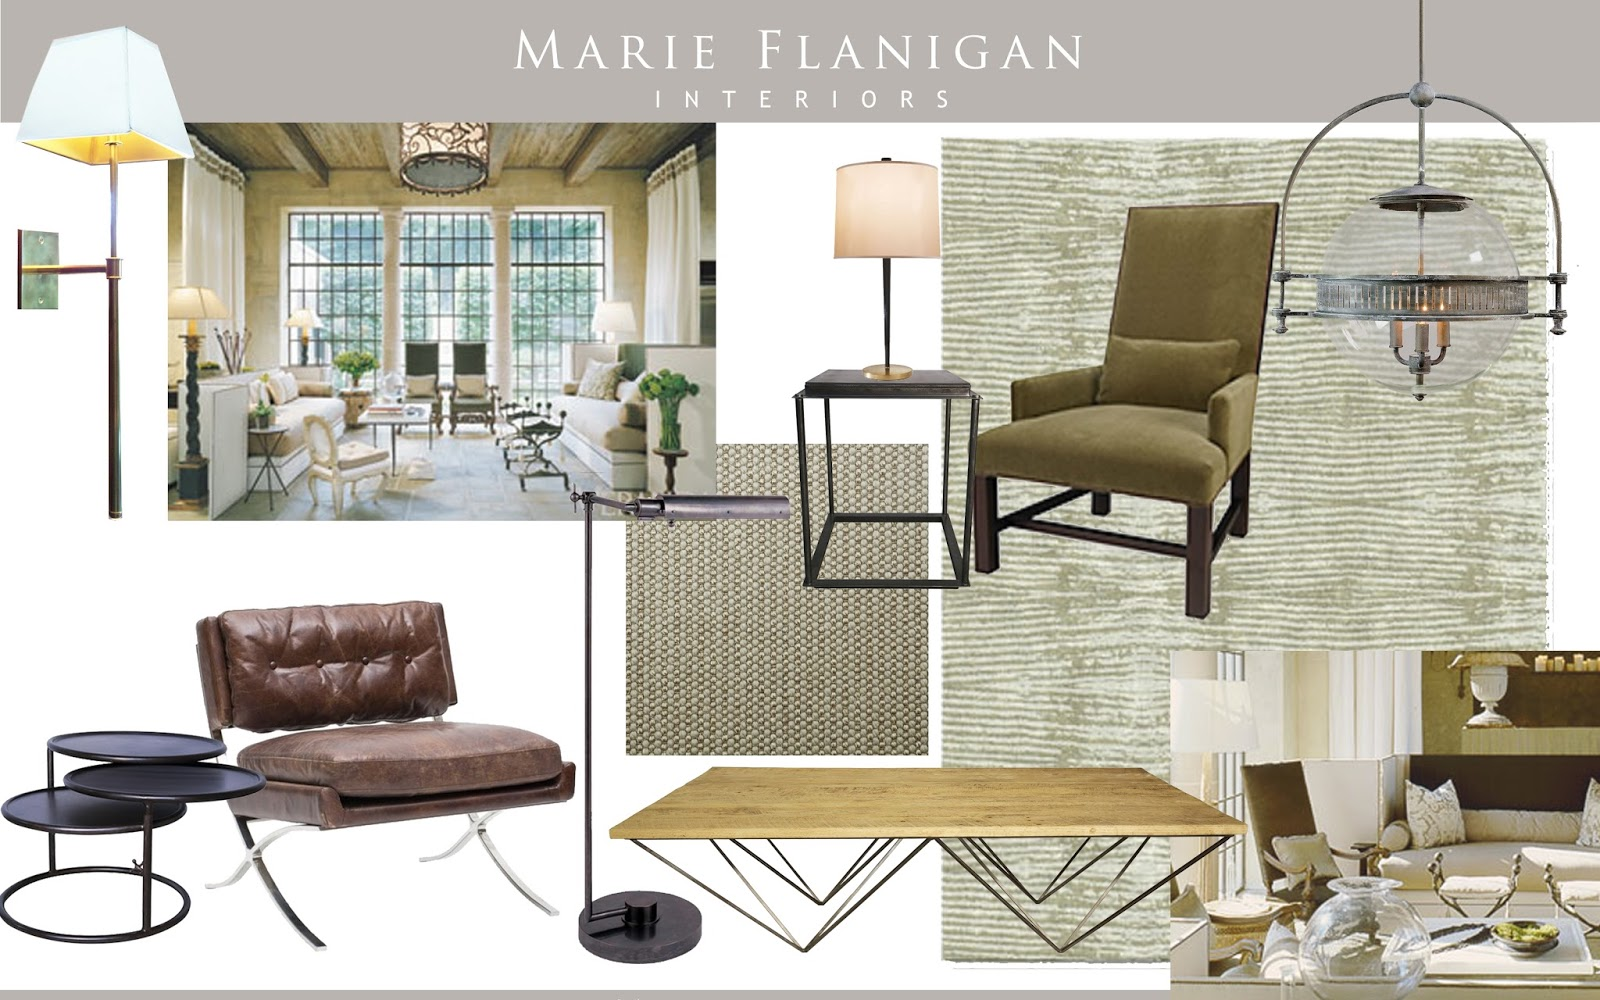 Tailored Lines, An Organic Color Palette, And A Soothing Blend Of Metal And  Wood. Marie Flanigan Interiors